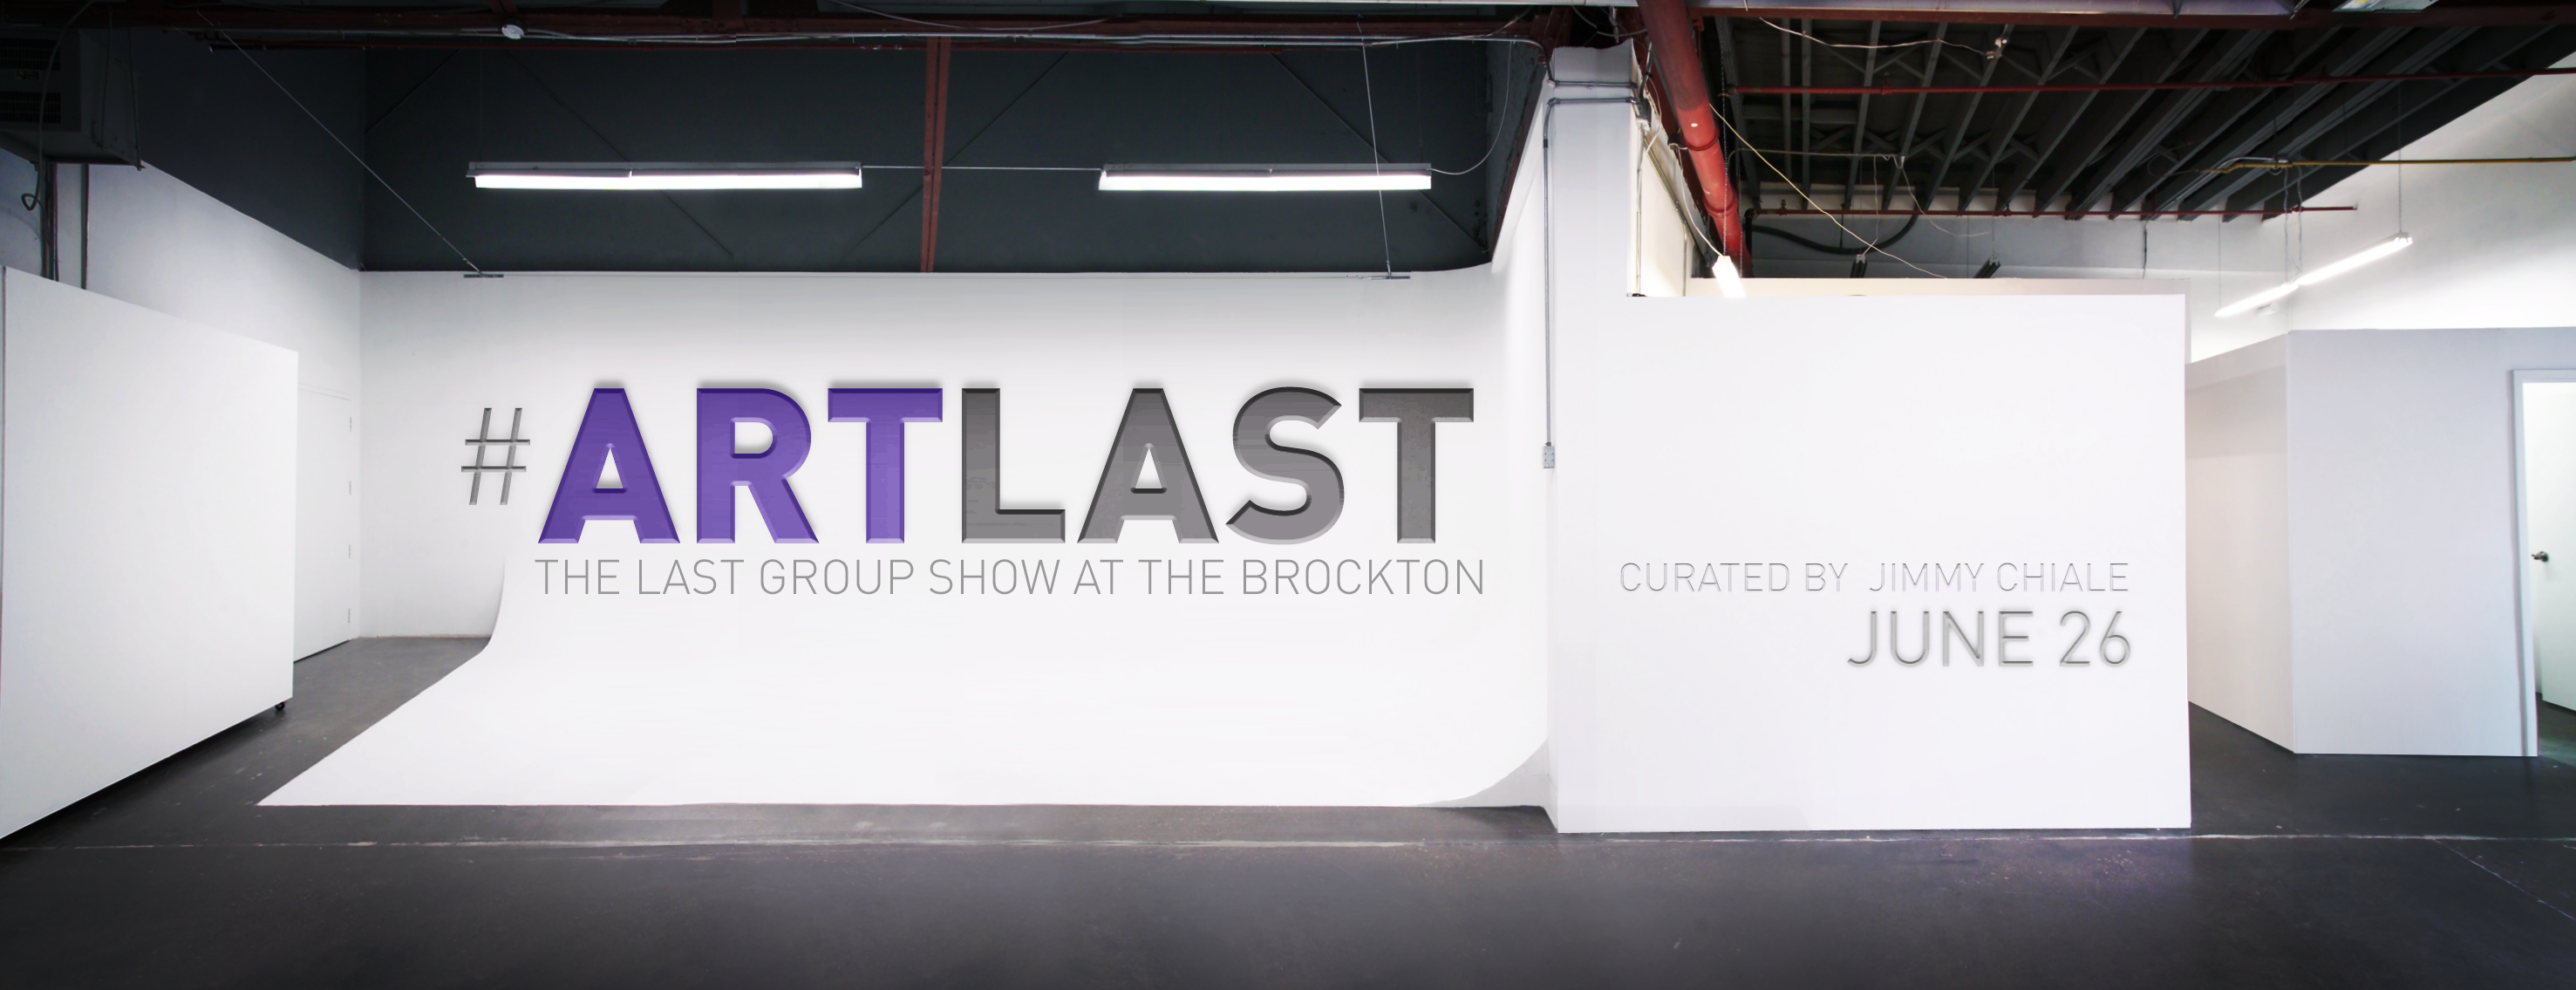 Brockton Presents: #ARTLAST